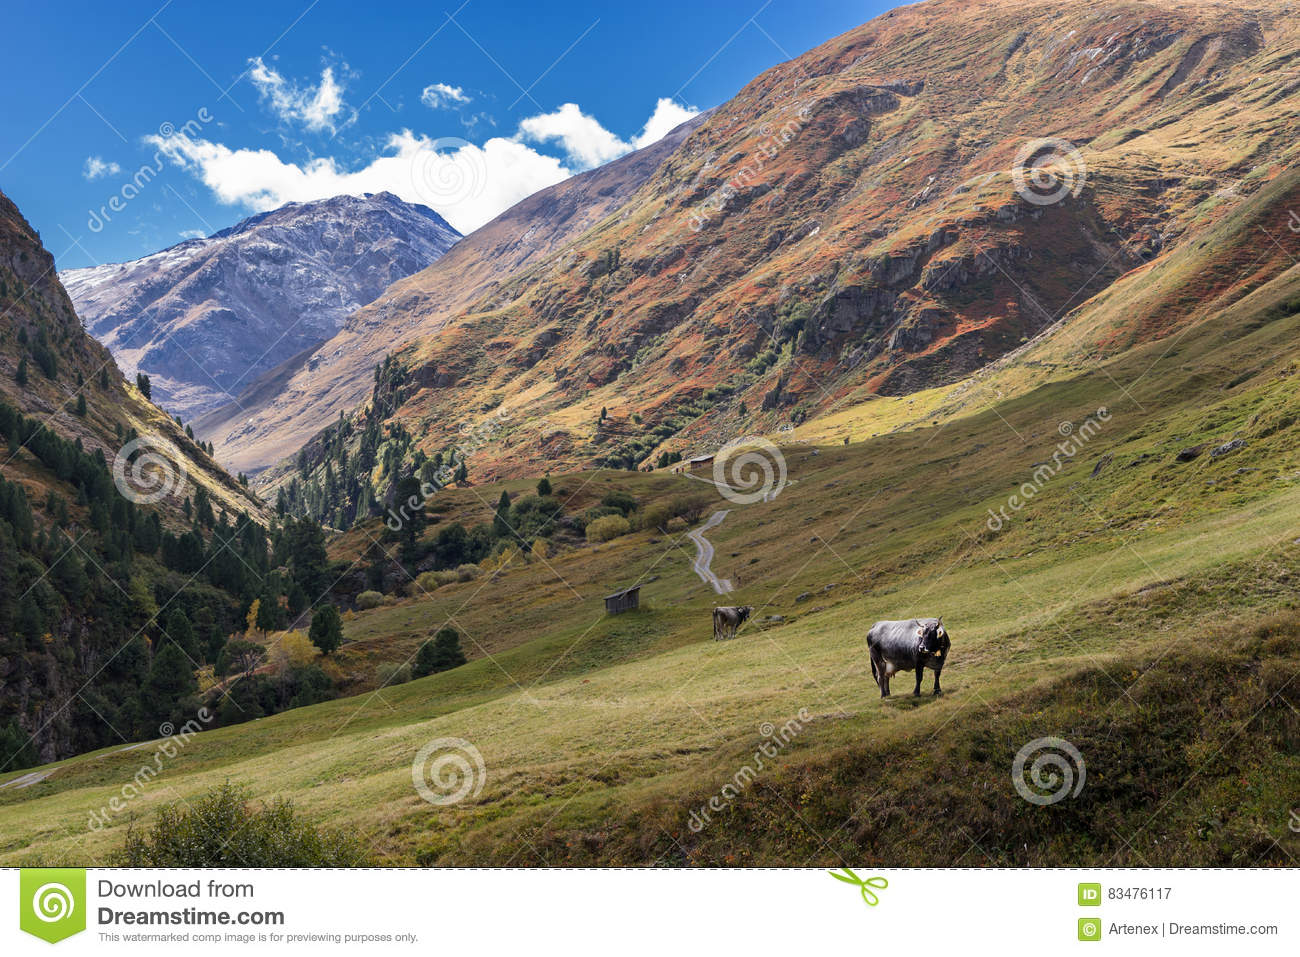 Tyrol Grey or Tyrolean Grey alpine cattle, milk cows on pasture. Colored hills, big mountains. Autumn in Vent Alps, Austria